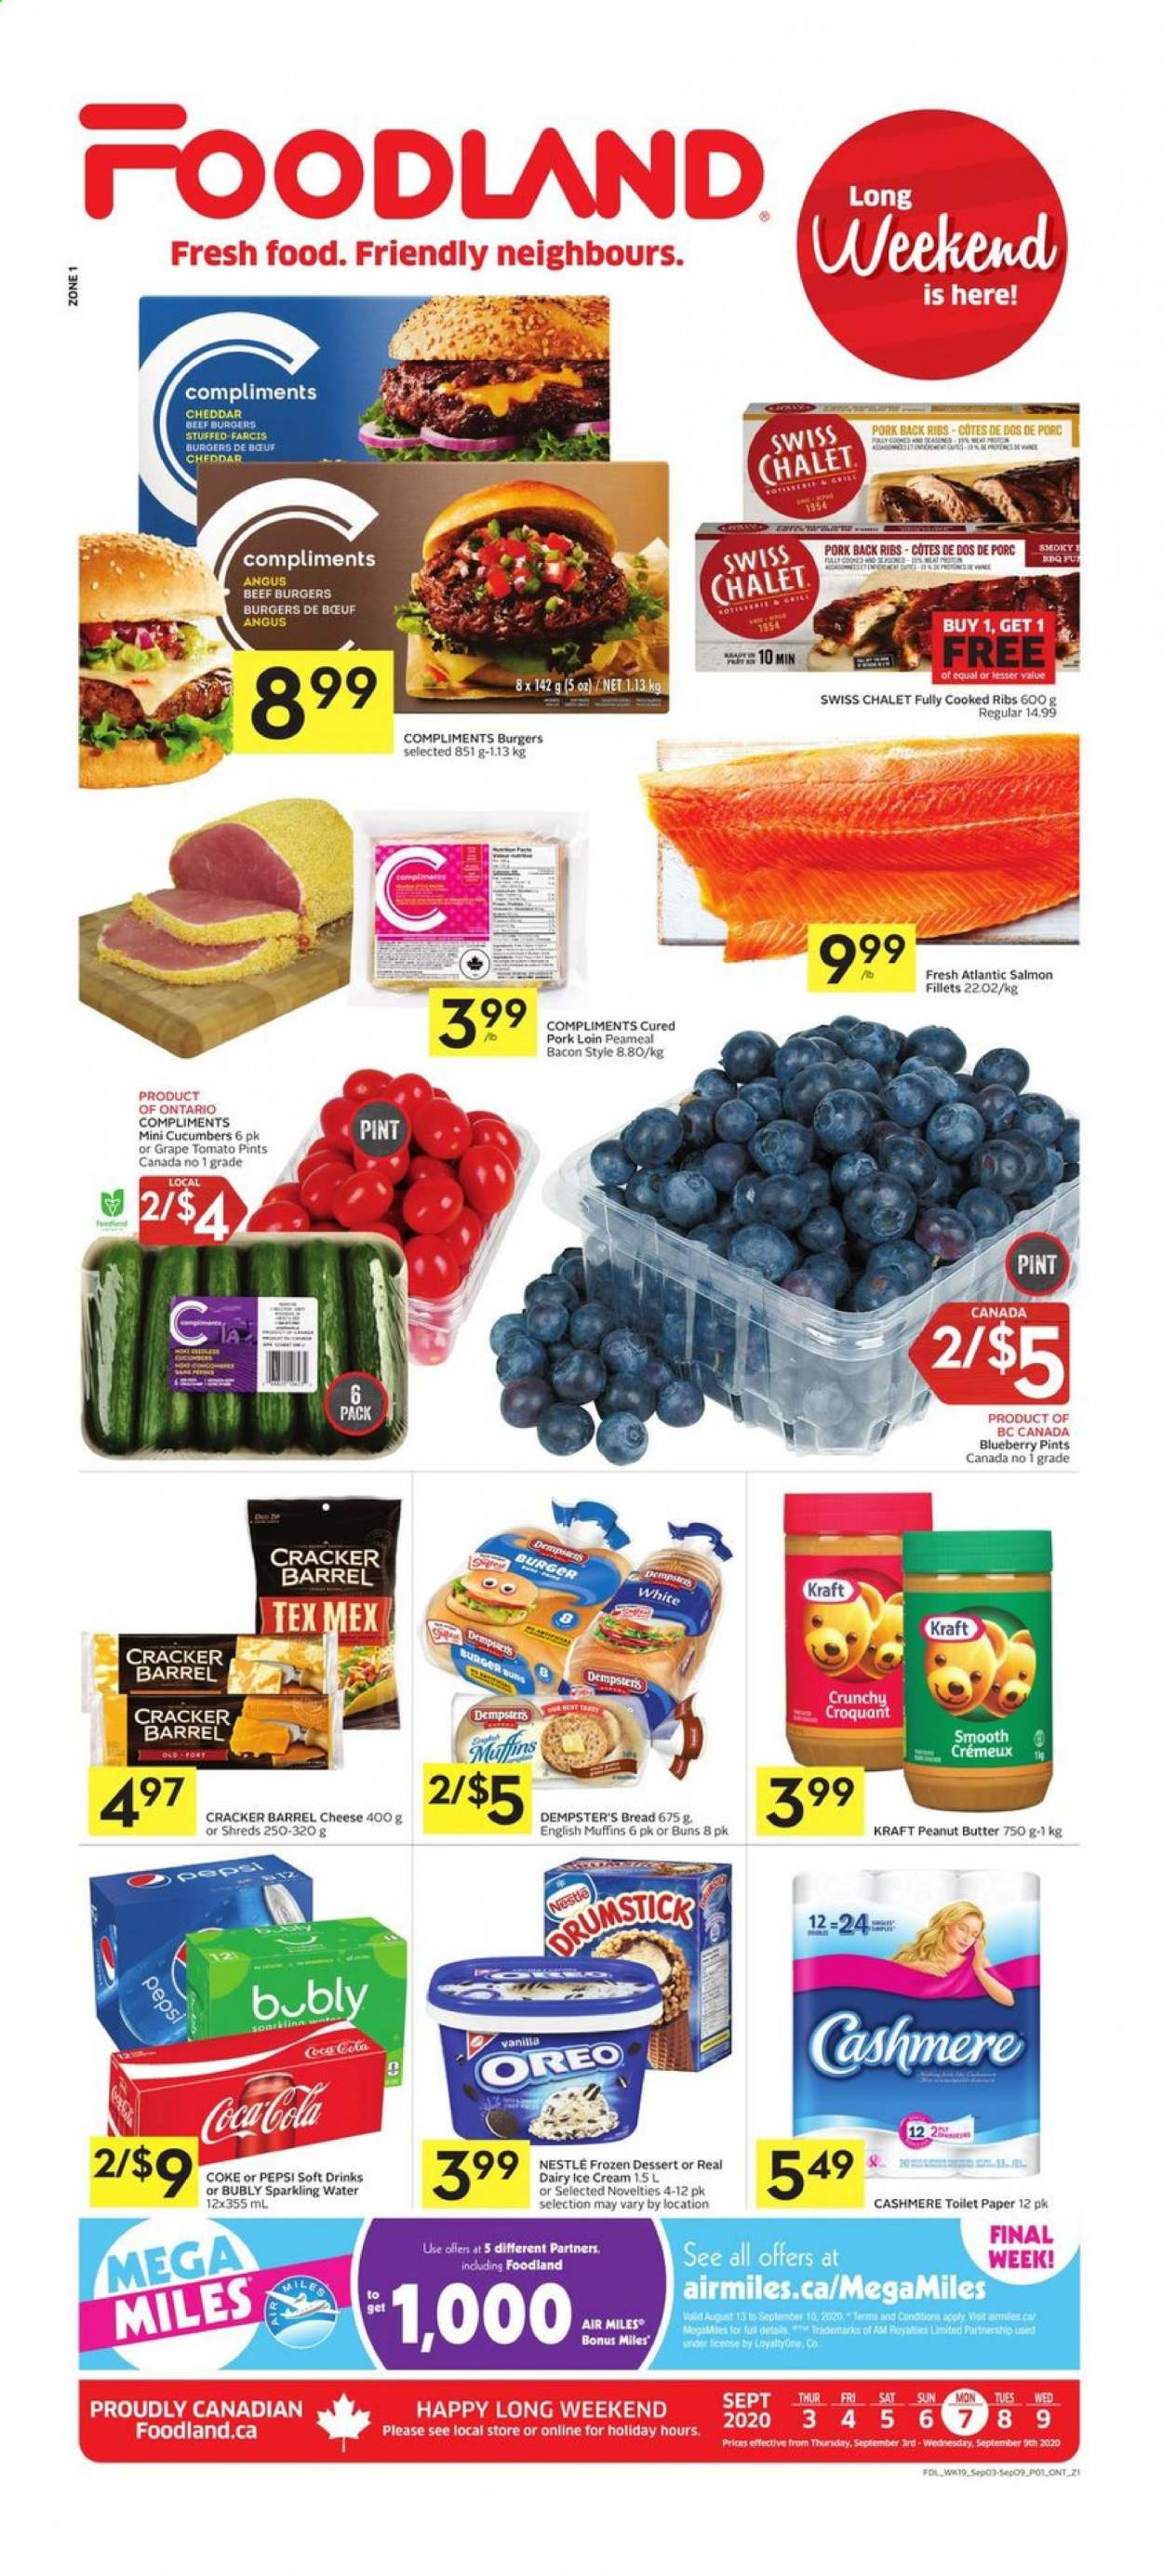 Foodland Flyer - September 03, 2020 - September 09, 2020 - Sales products - bacon, beef meat, bread, butter, coca-cola, cucumbers, english muffins, frozen, grapes, muffins, nestlé, salmon, toilet, ice cream, pork loin, pork meat, cheddar, peanut butter, peanuts, pepsi, oreo, toilet paper, cheese, dessert, sparkling water, smooth, cracker, ribs, porc, gril, tomato, burger. Page 1.